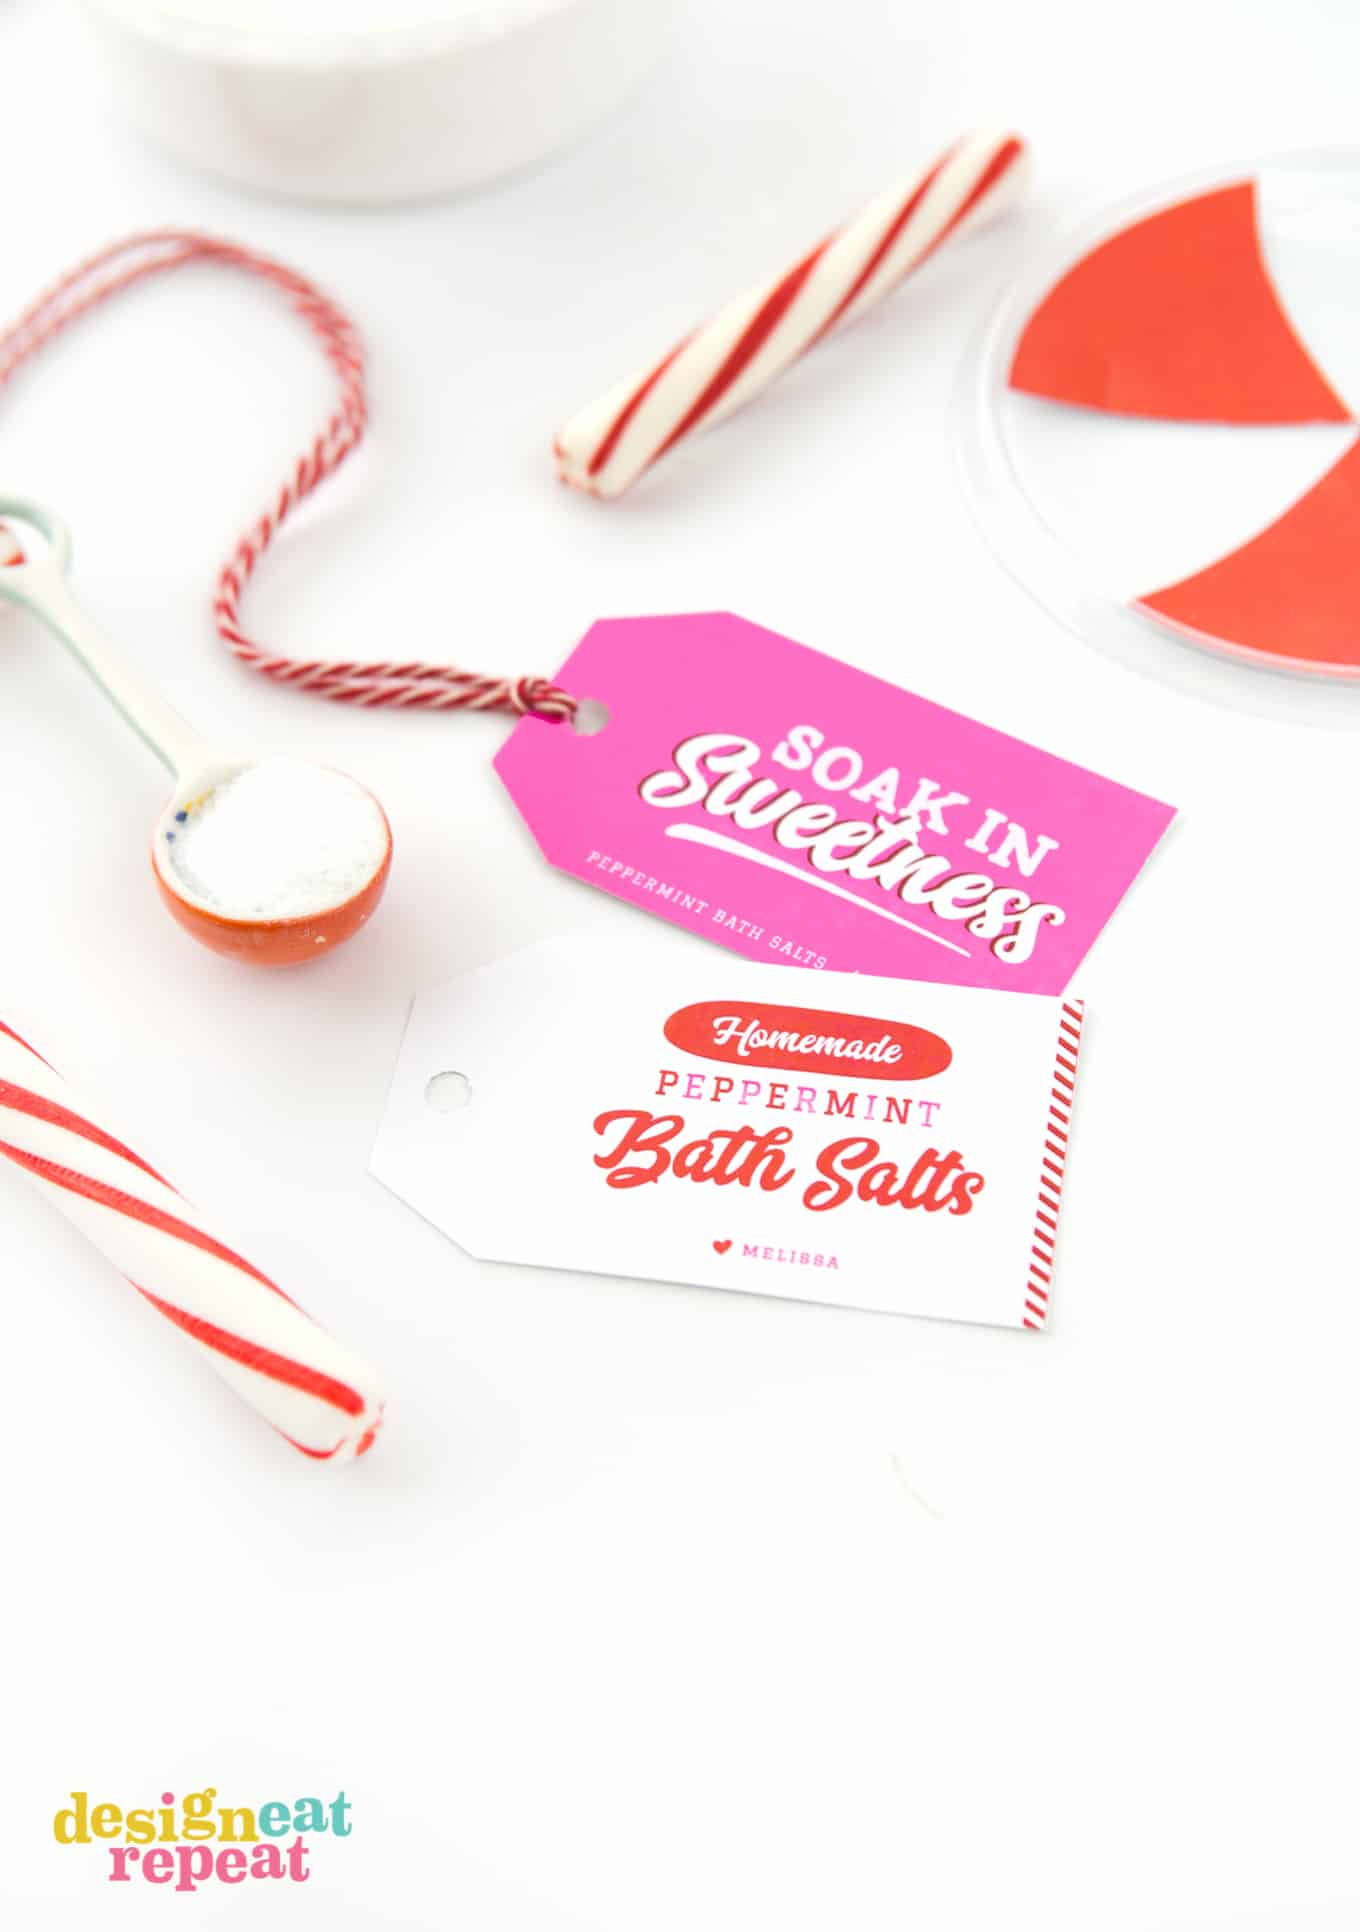 """White and pink printable gift tags for peppermint DIY bath salt. Phrases are """"Homemade Peppermint Bath Salts"""" and """"Soak in Sweetness"""""""